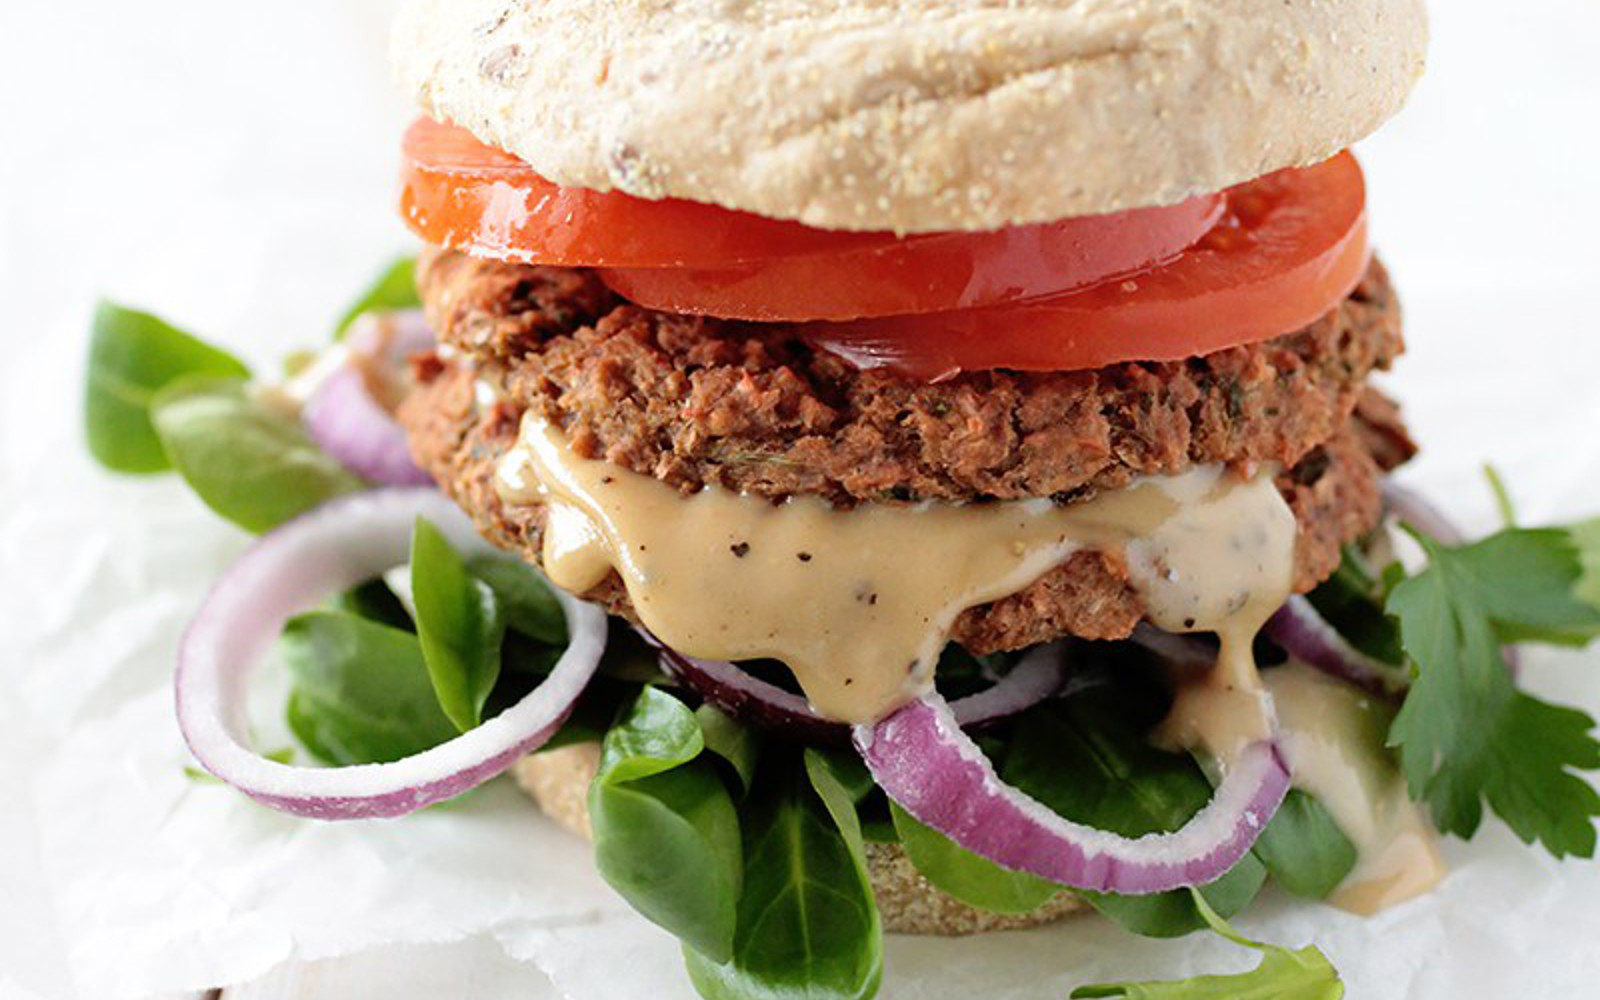 Beet and Chickpea Burger